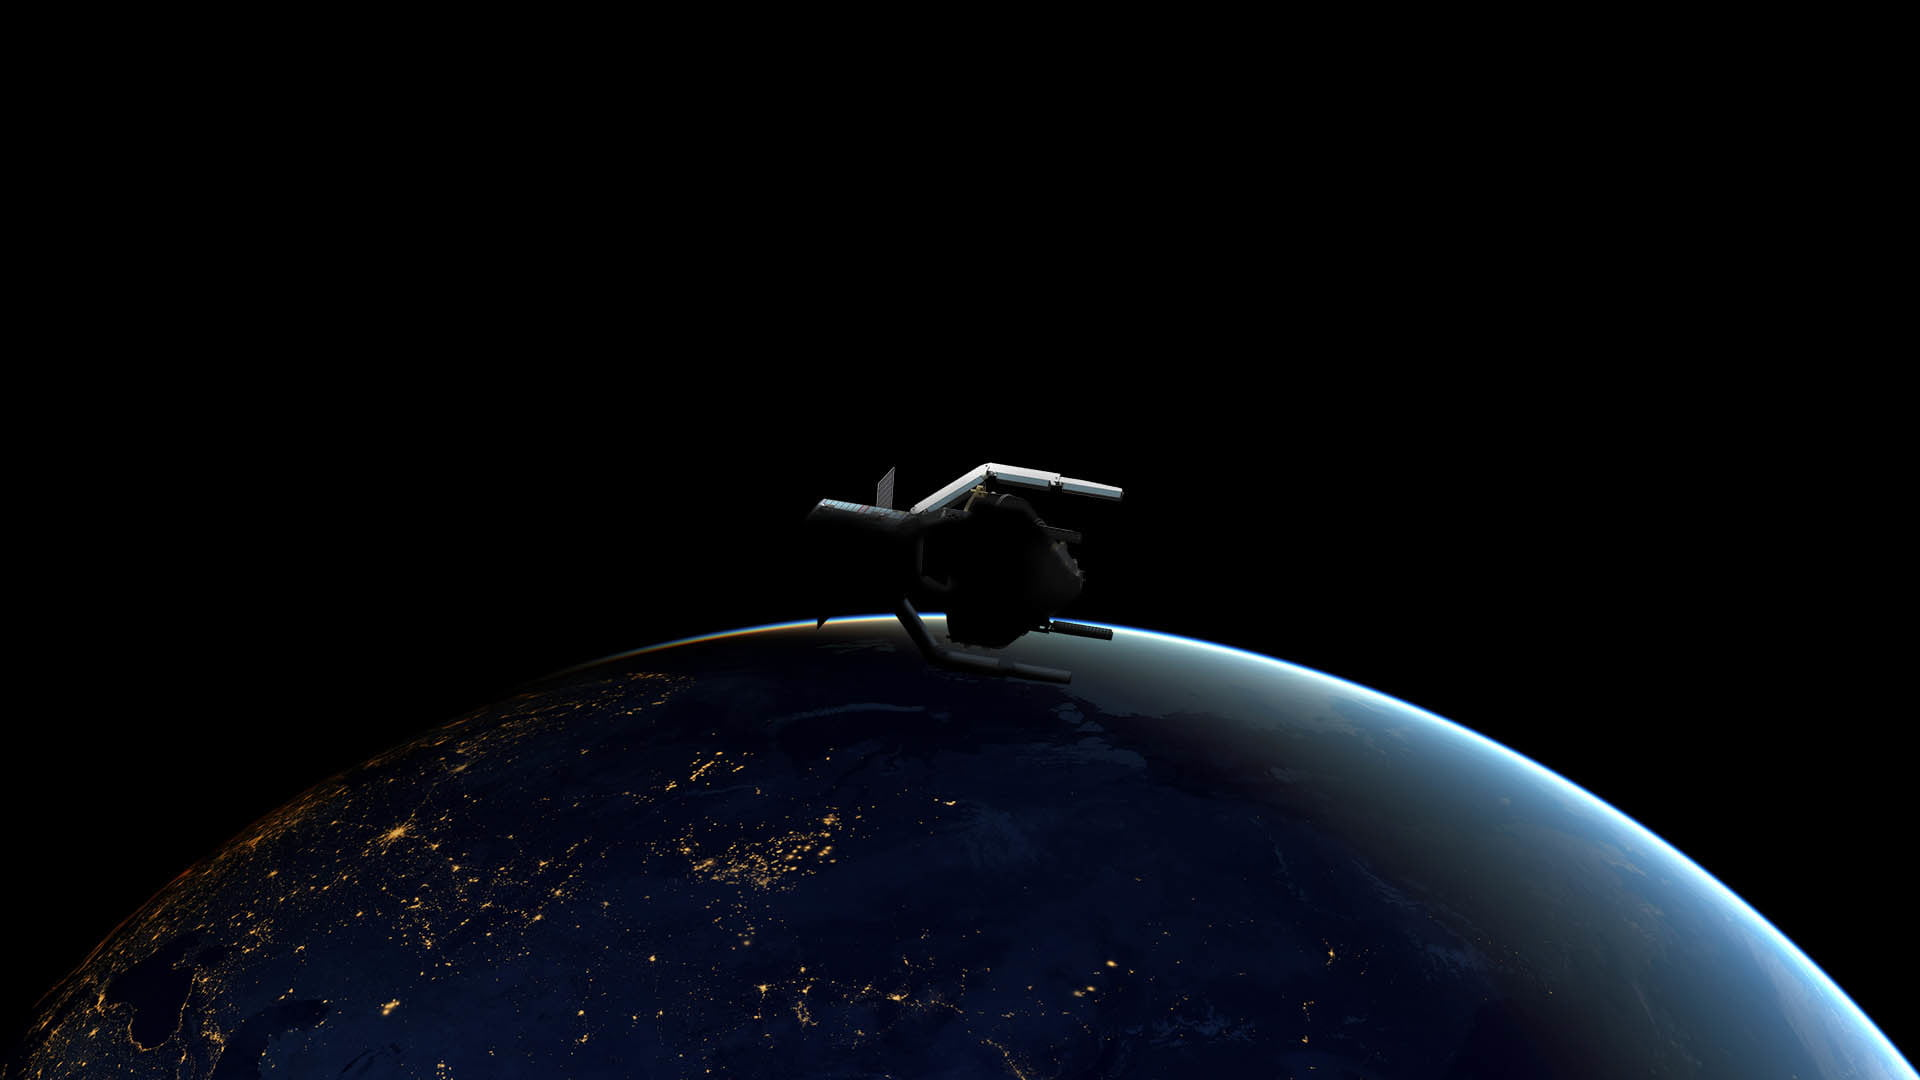 European Space Agency will launch a four-armed spacecraft to grab space debris